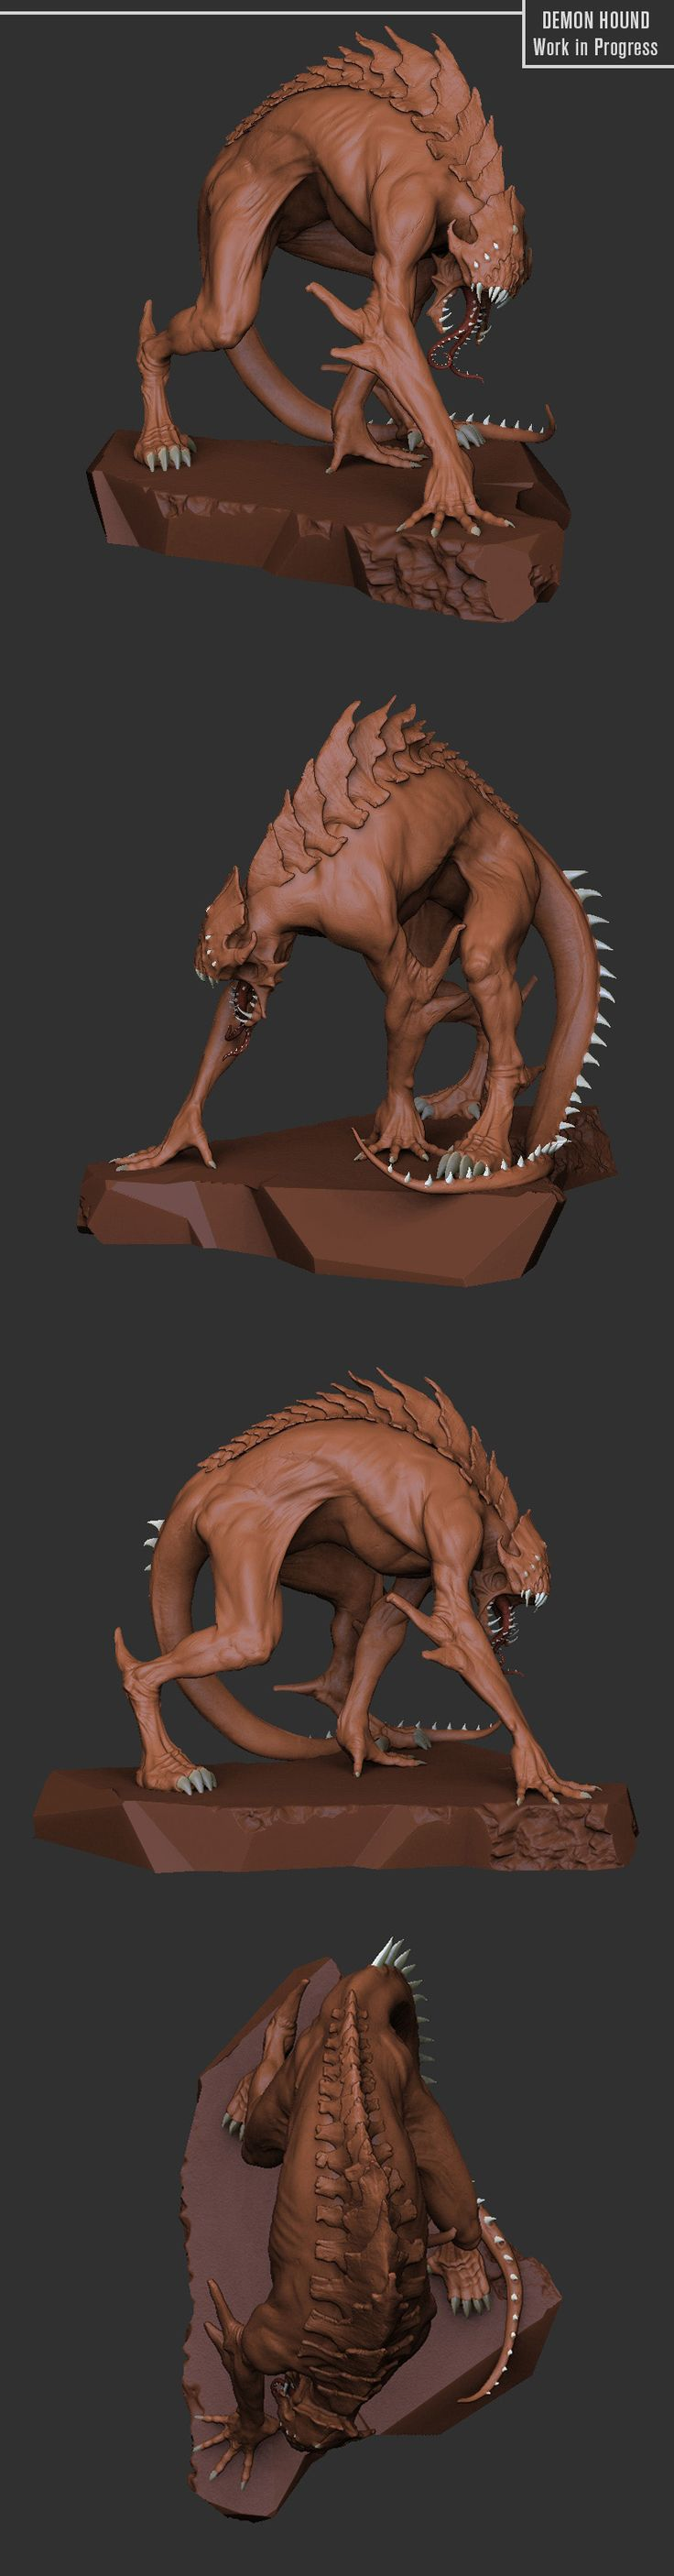 What Are You Working On? 2014 Edition - Page 320 - Polycount Forum